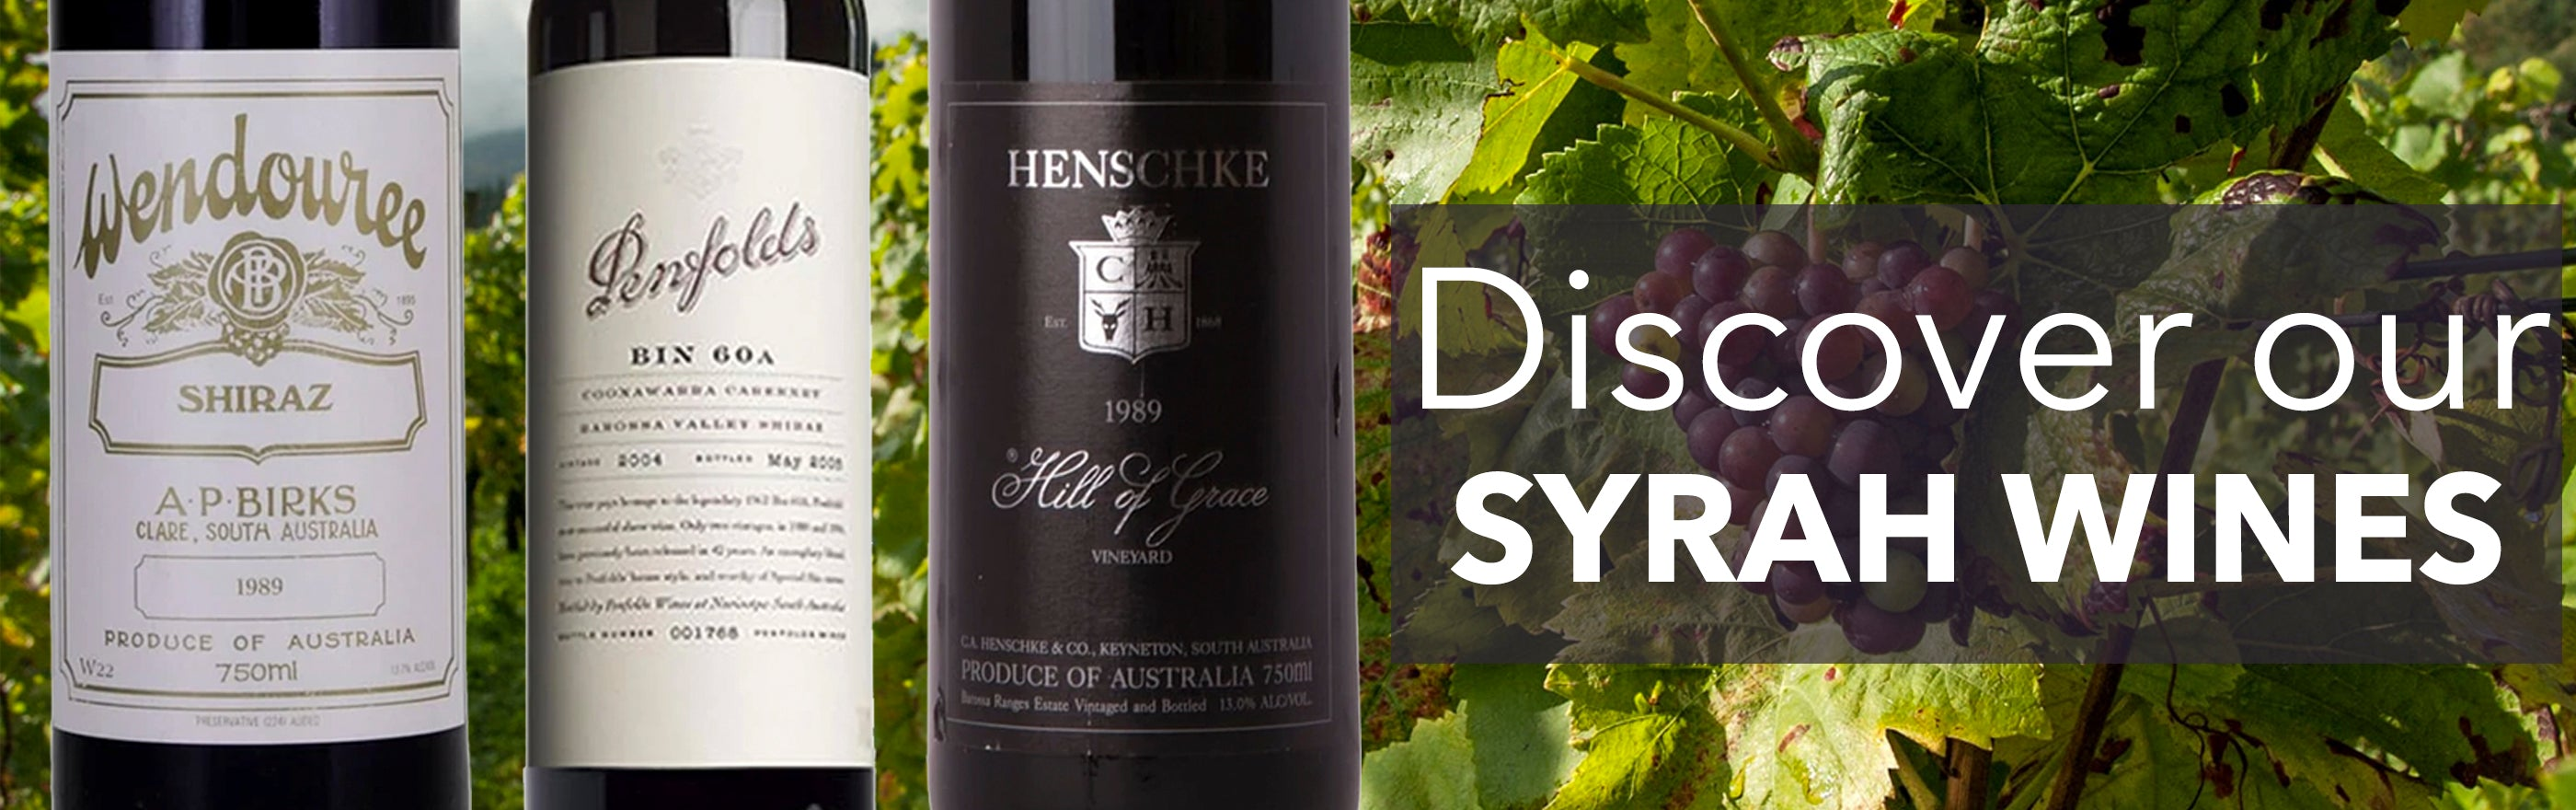 Buy Syrah/Shira wines online